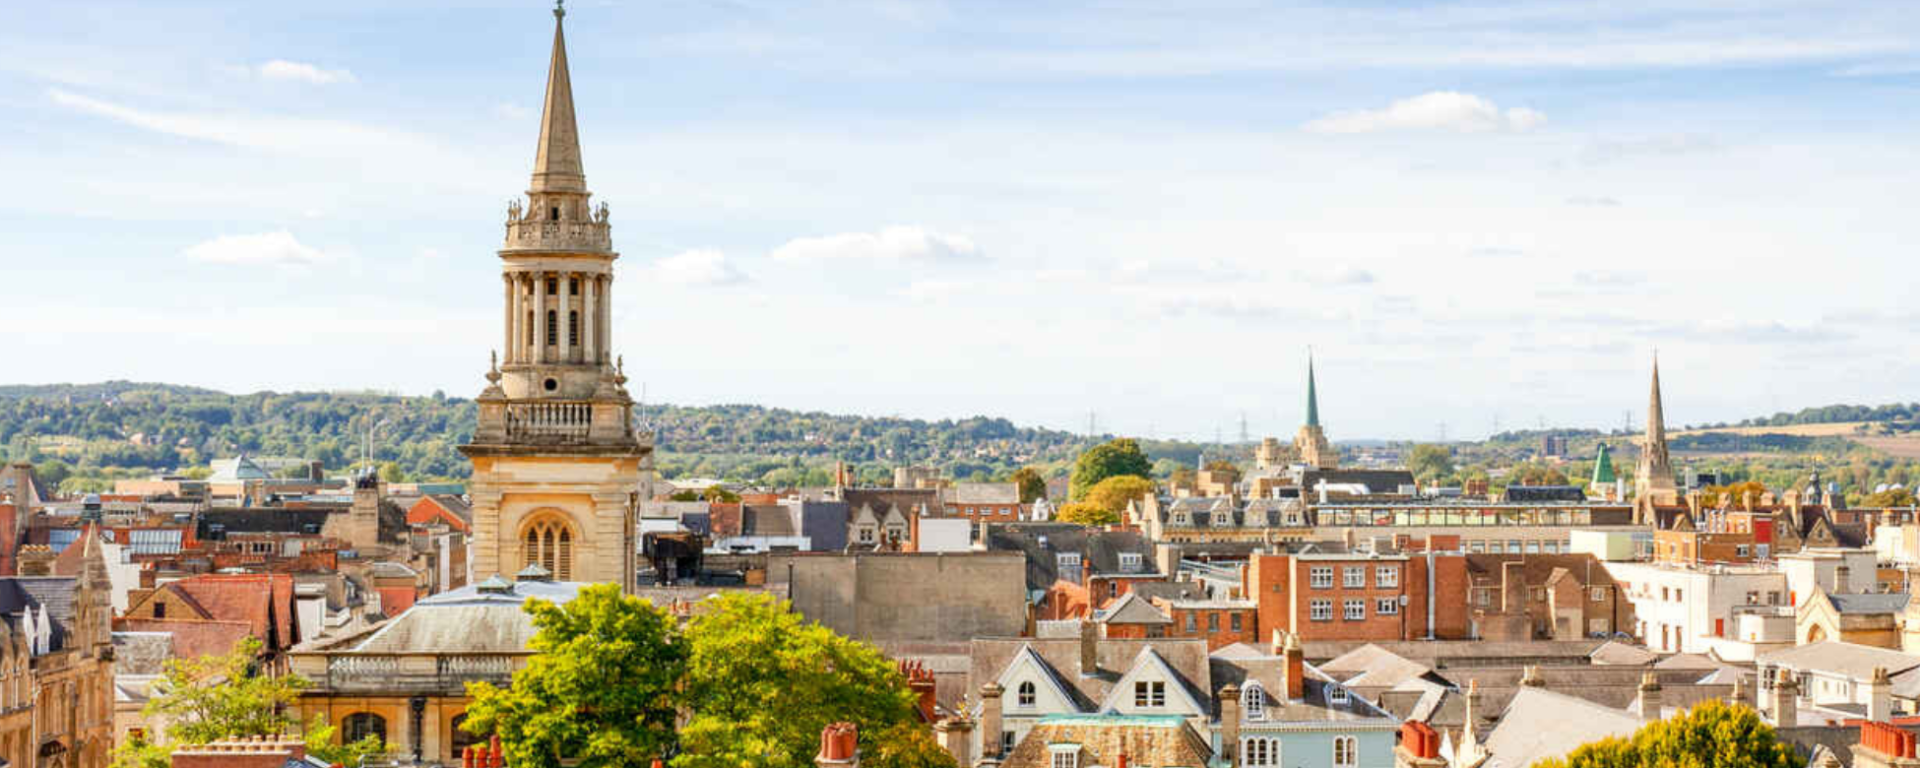 summer events in oxford